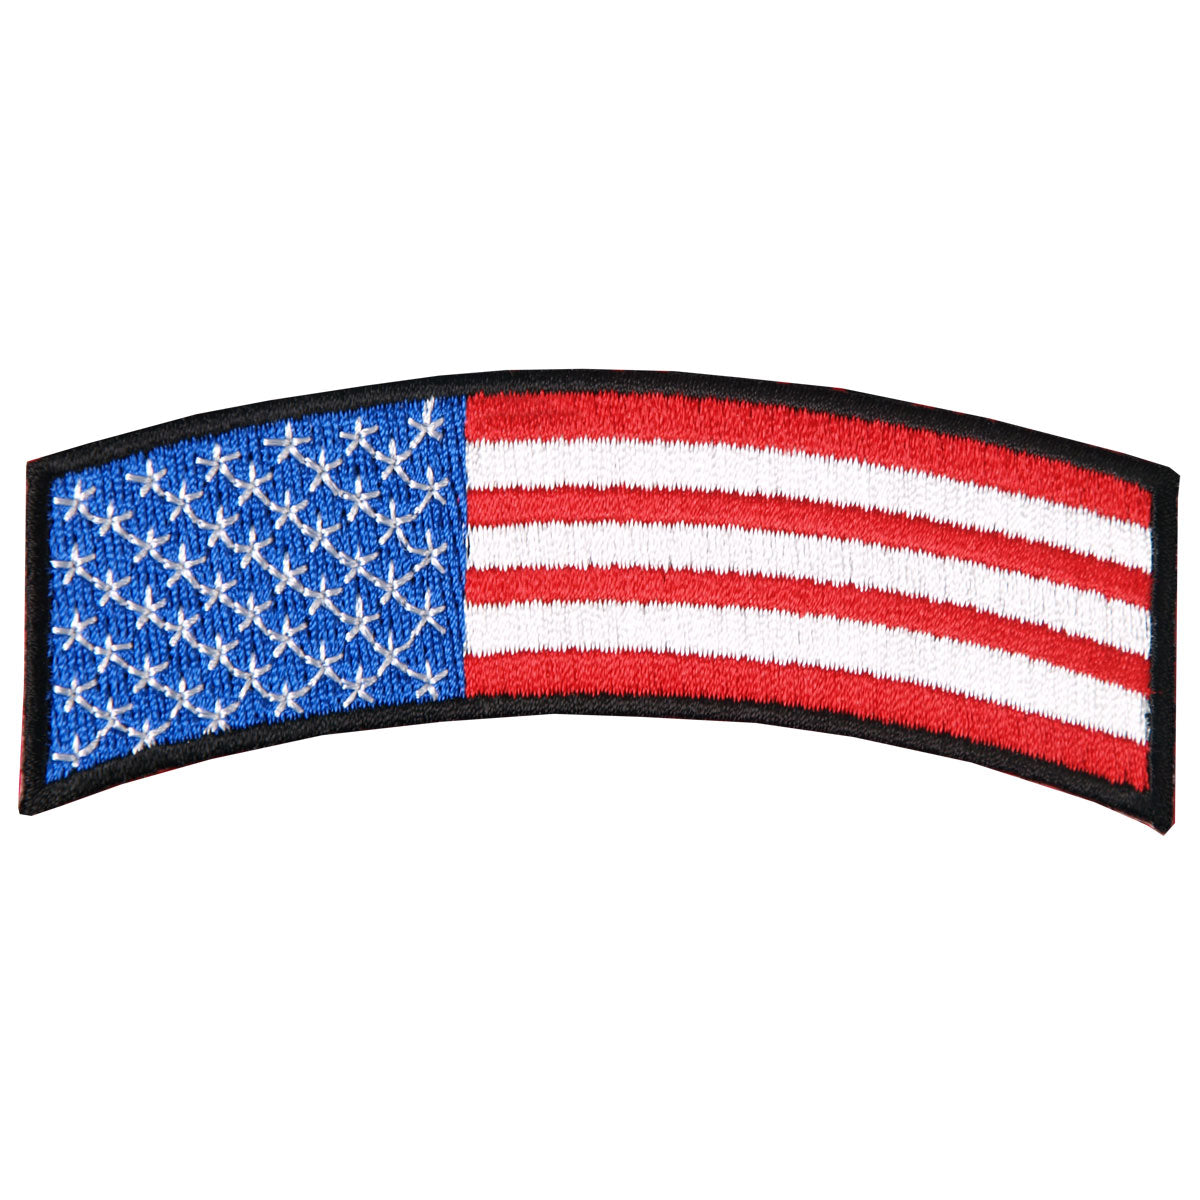 "Hot Leathers American Flag 4"" x 1"" Patch"